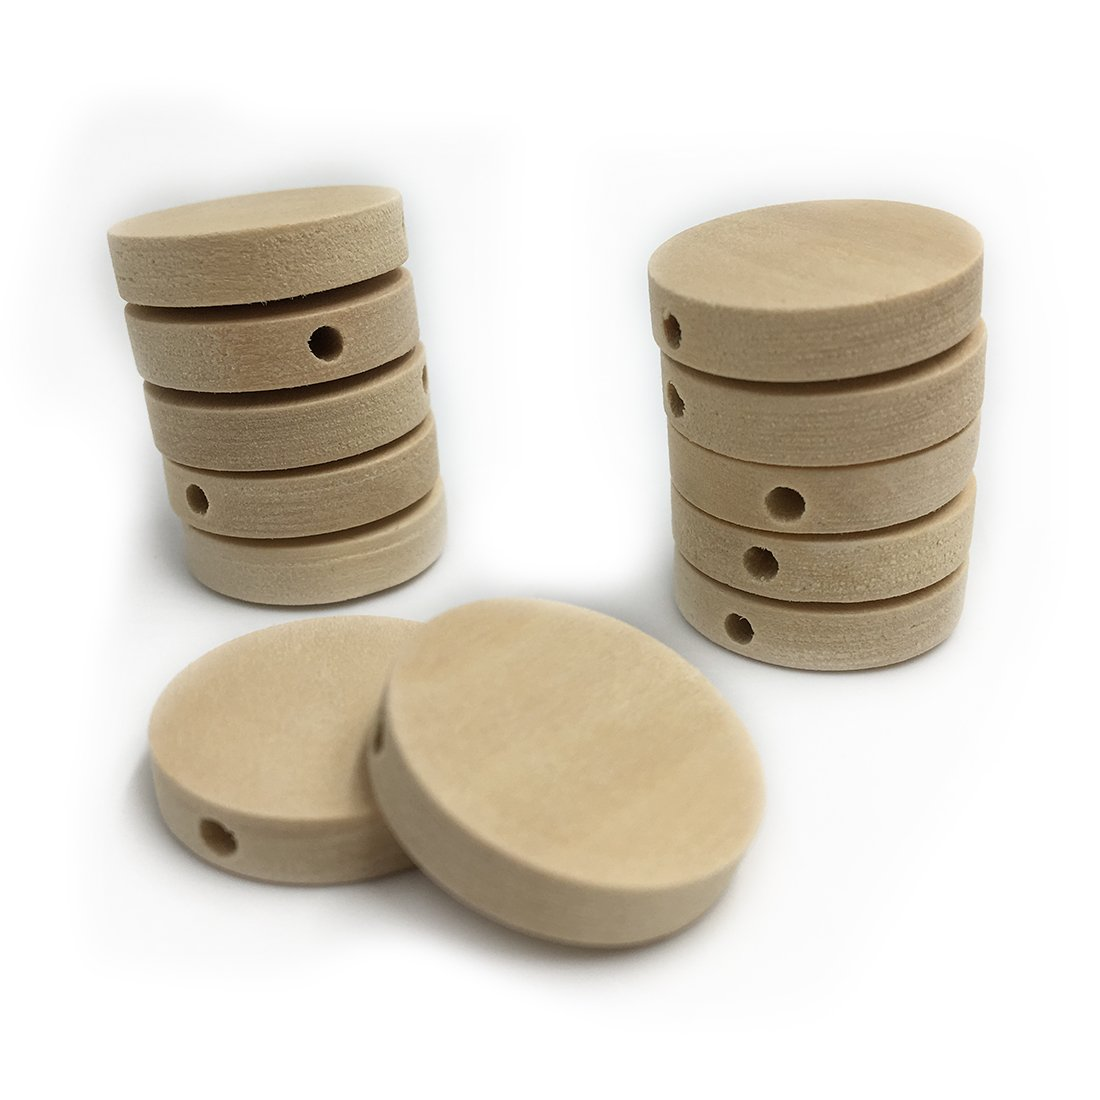 0.79 Inch Wood Round Beads Wooden Teether Unfinished DIY Accessories Wood Chips Circles Wood Discs Baby Toys Amyster 50pcs Natural Flat 20mm 50pcs